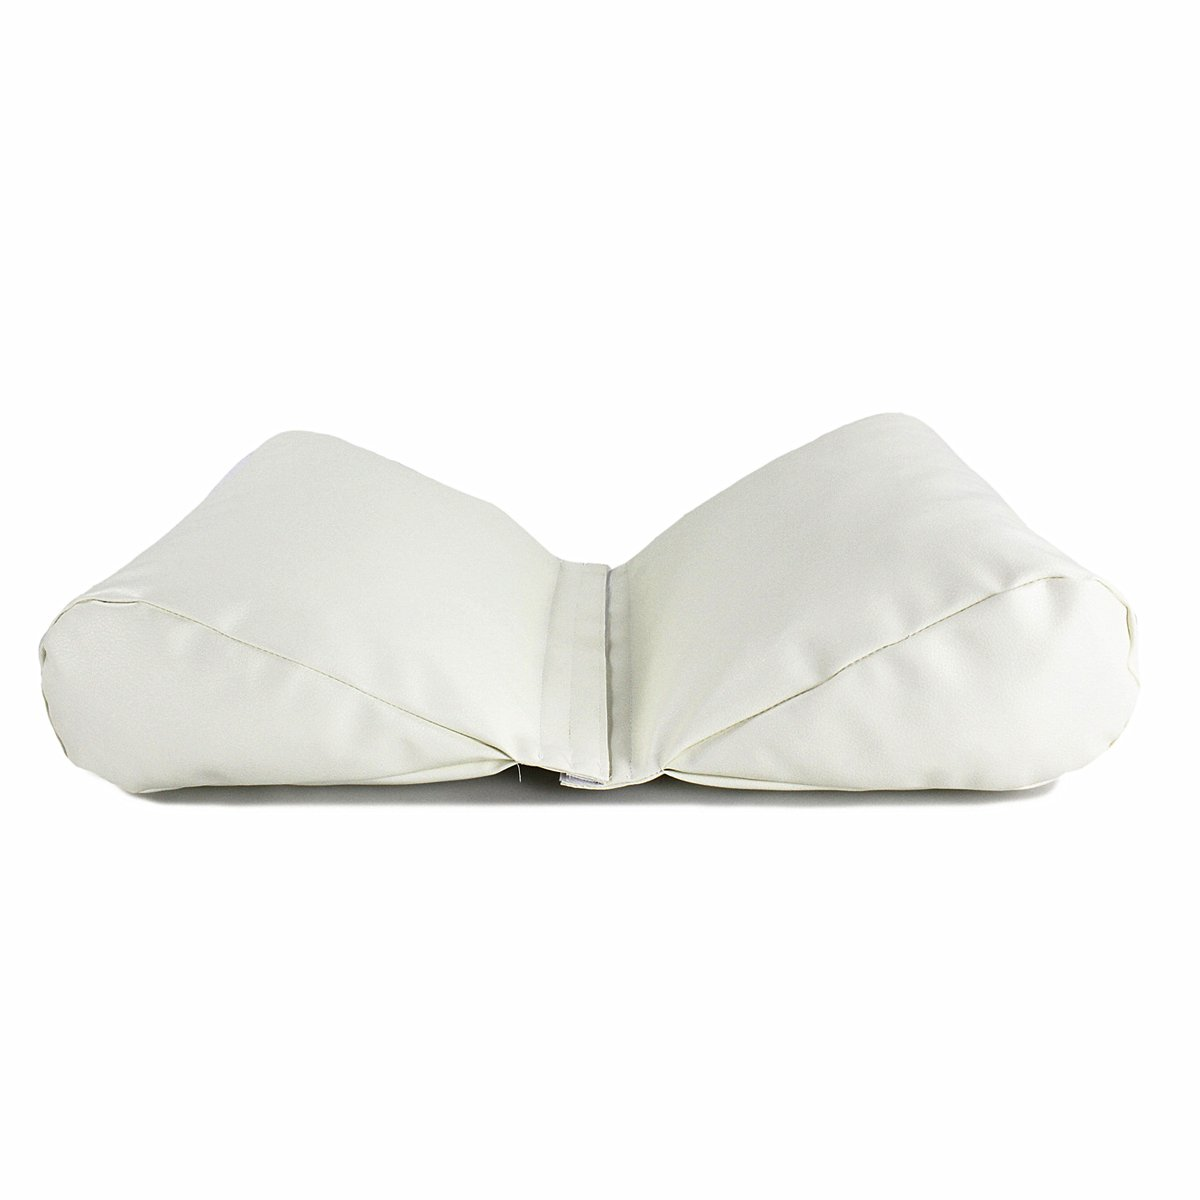 Anjoy Newborn Baby Photography Butterfly Posing Pillow Filler Photo Prop